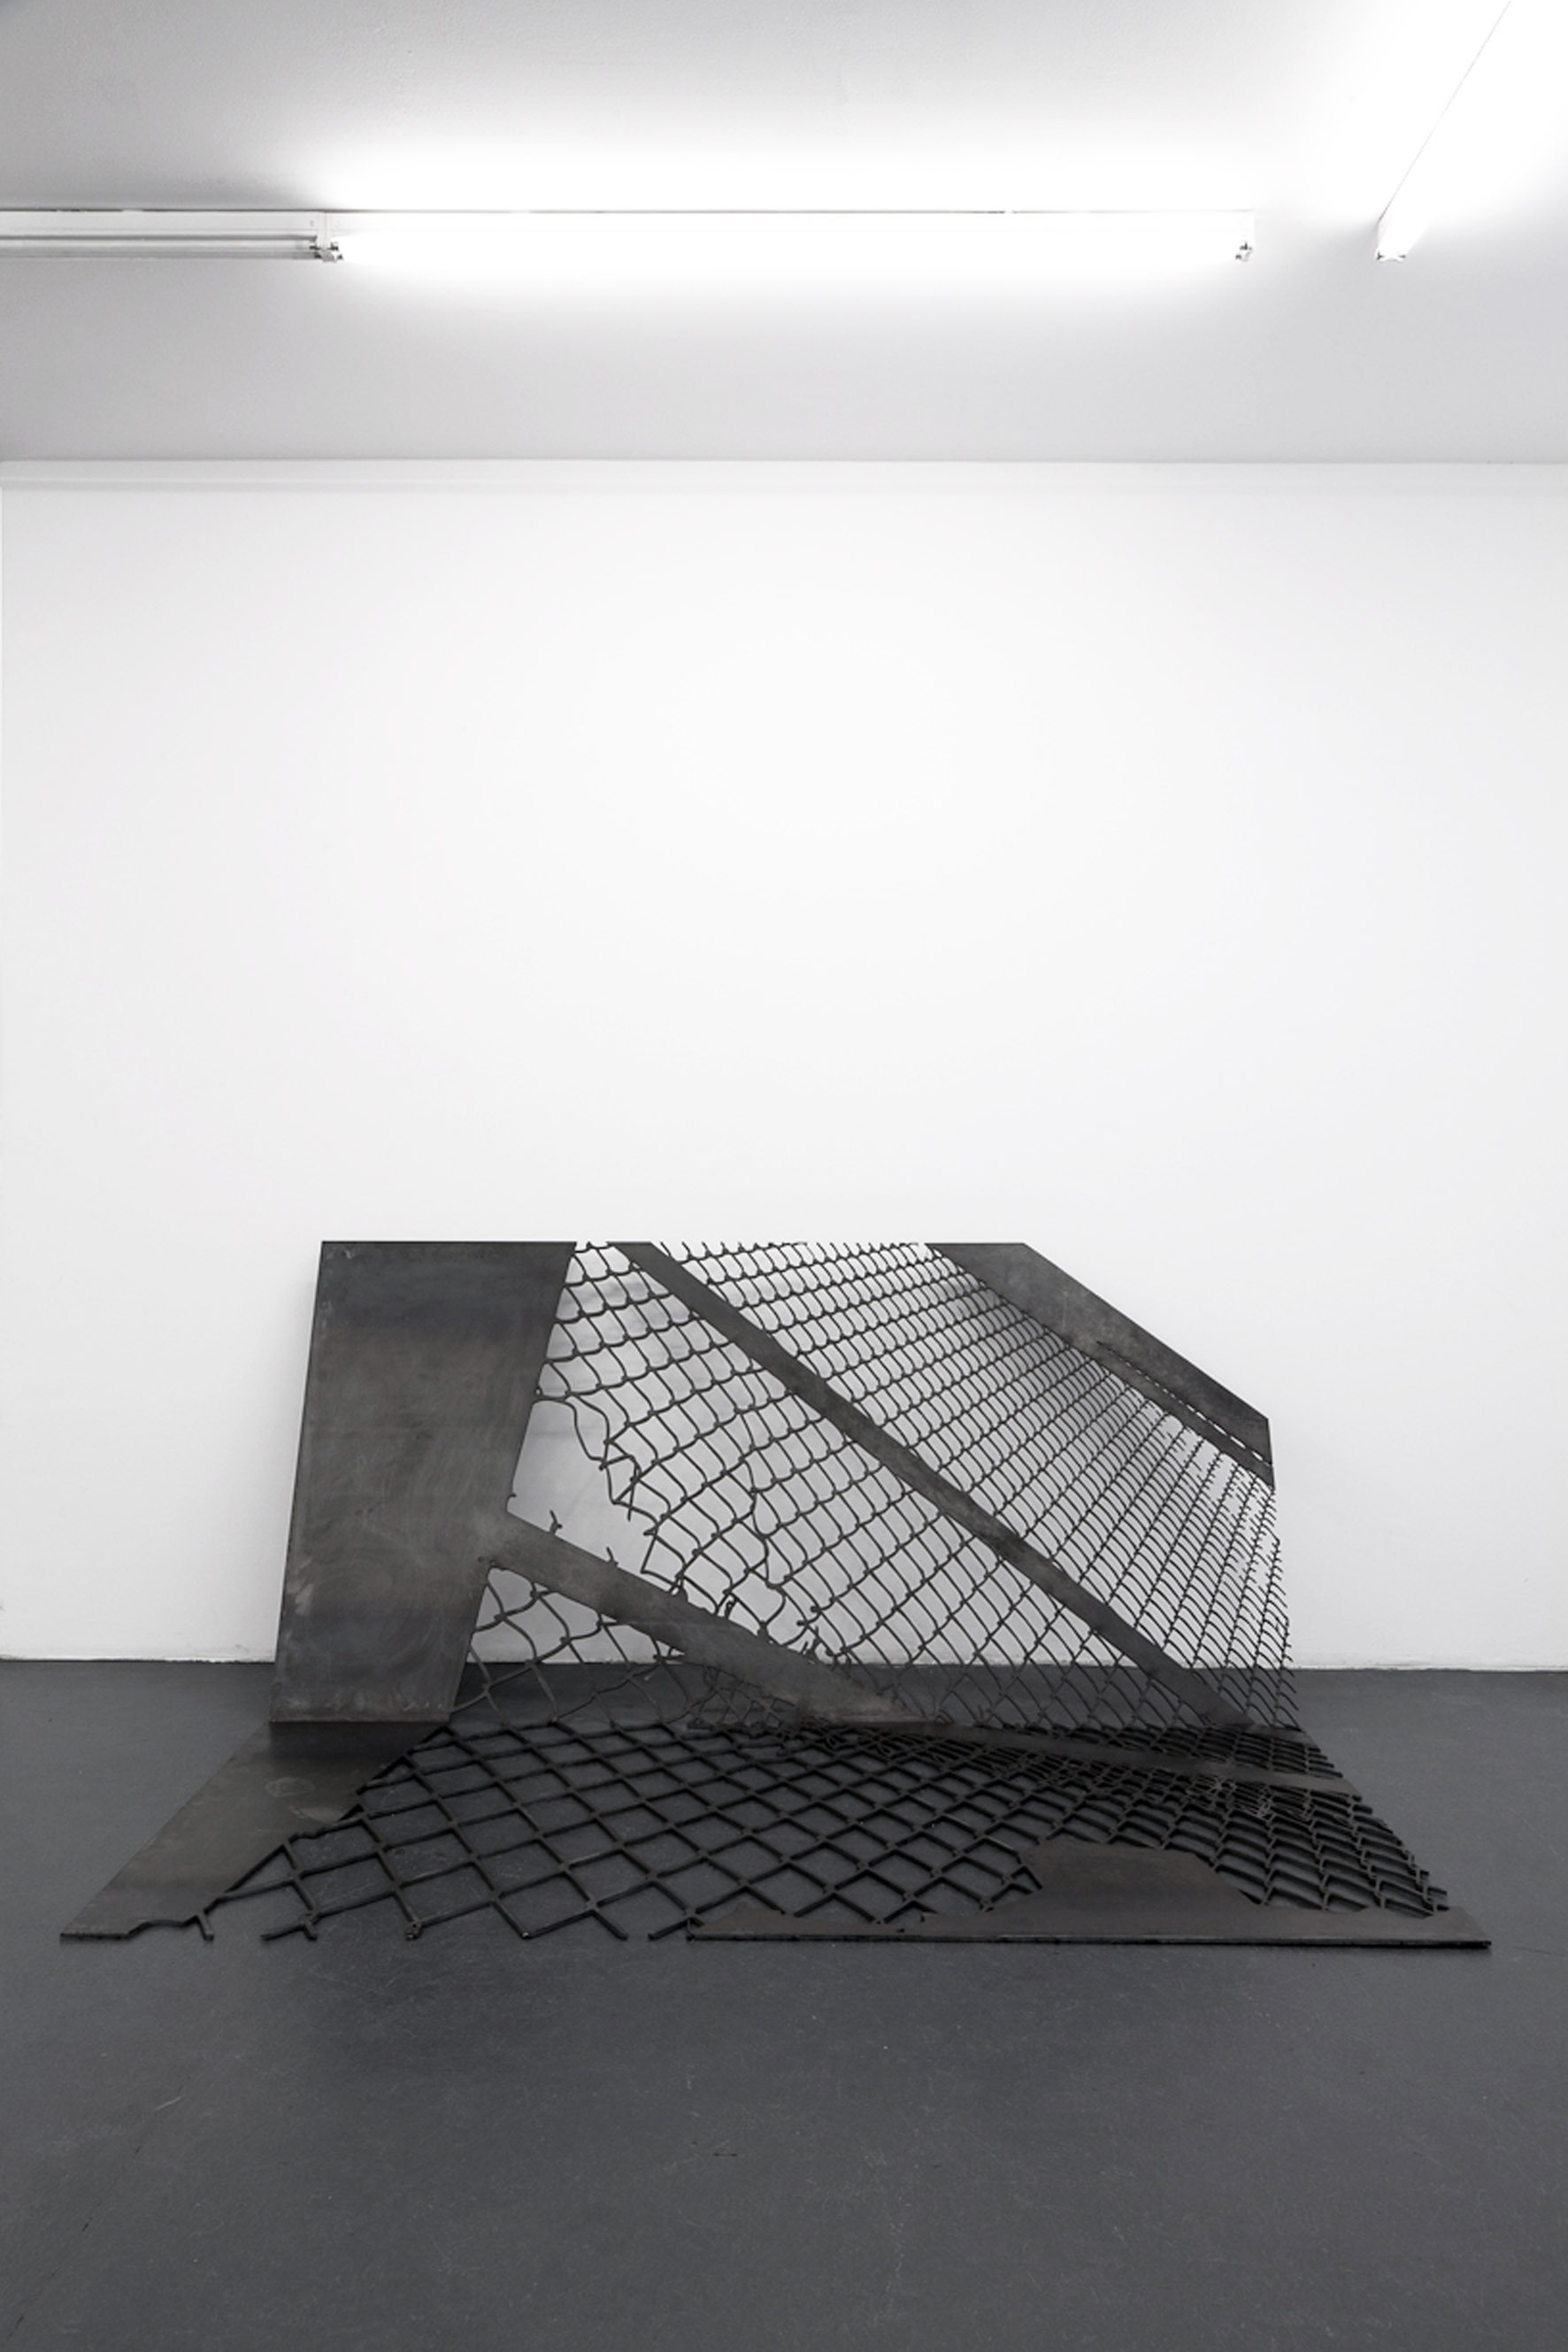 Untitled Fence Structure, 2013